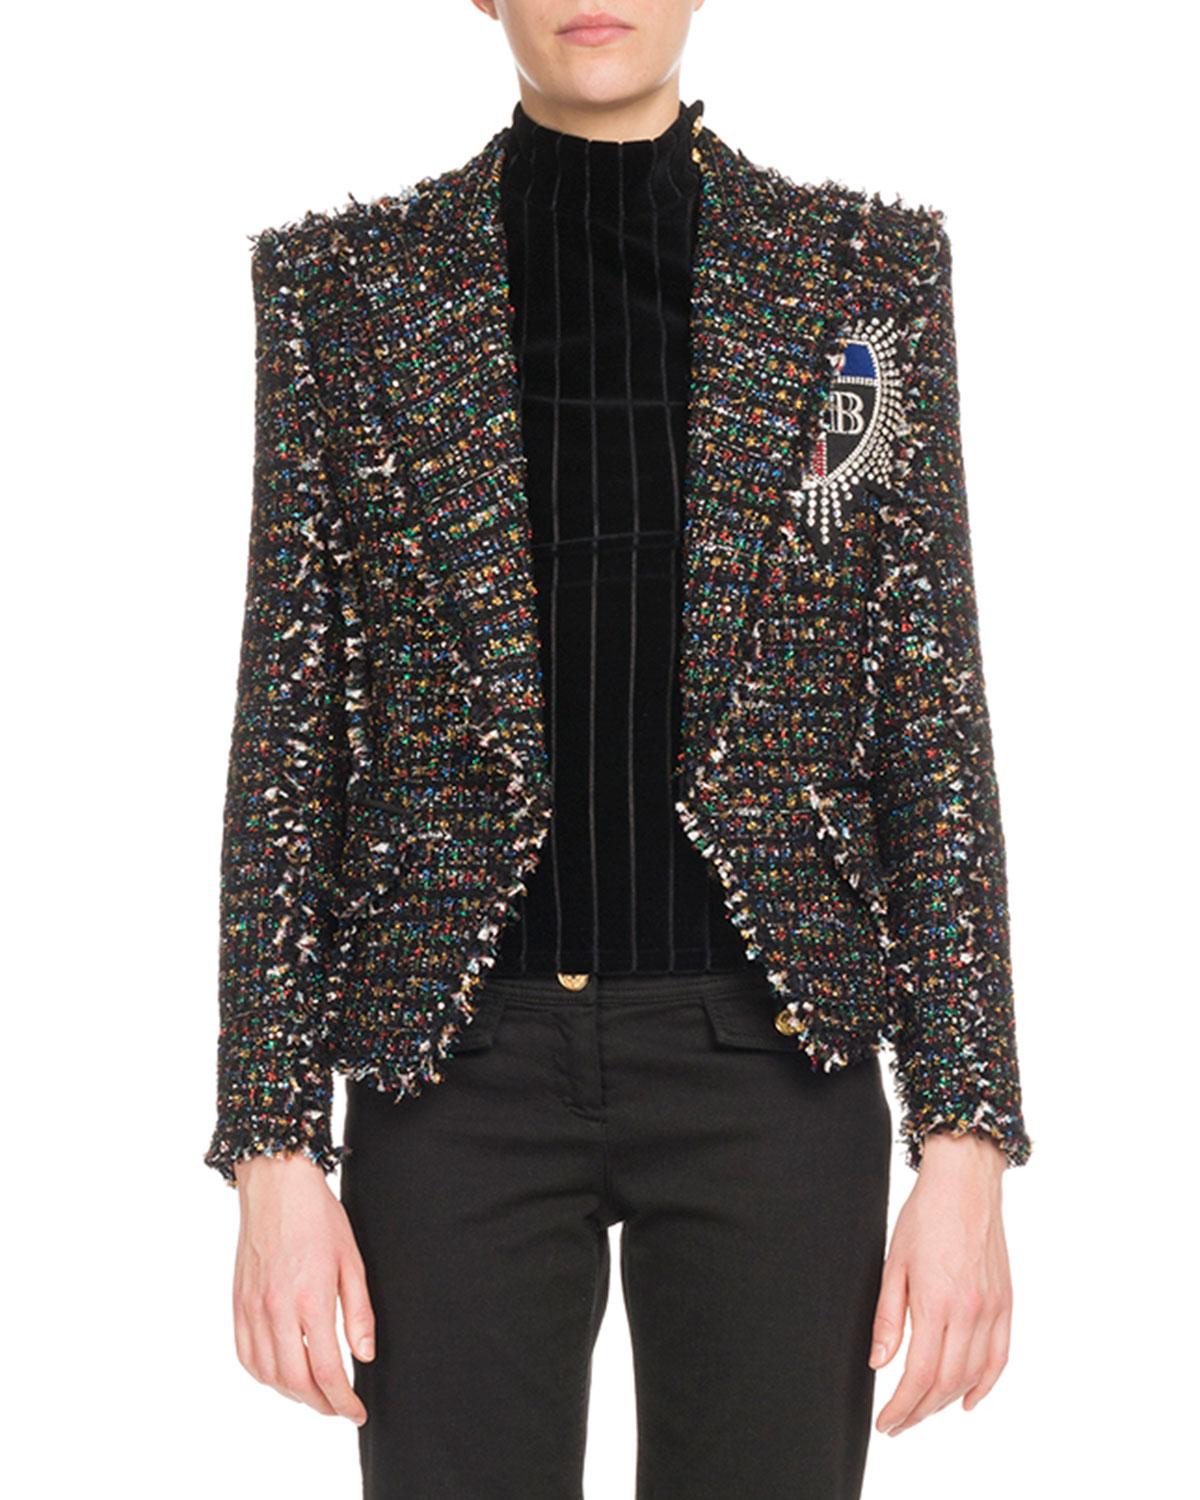 Tweed Jacket With Metallic Thread And Embellished Patch, Black Pattern